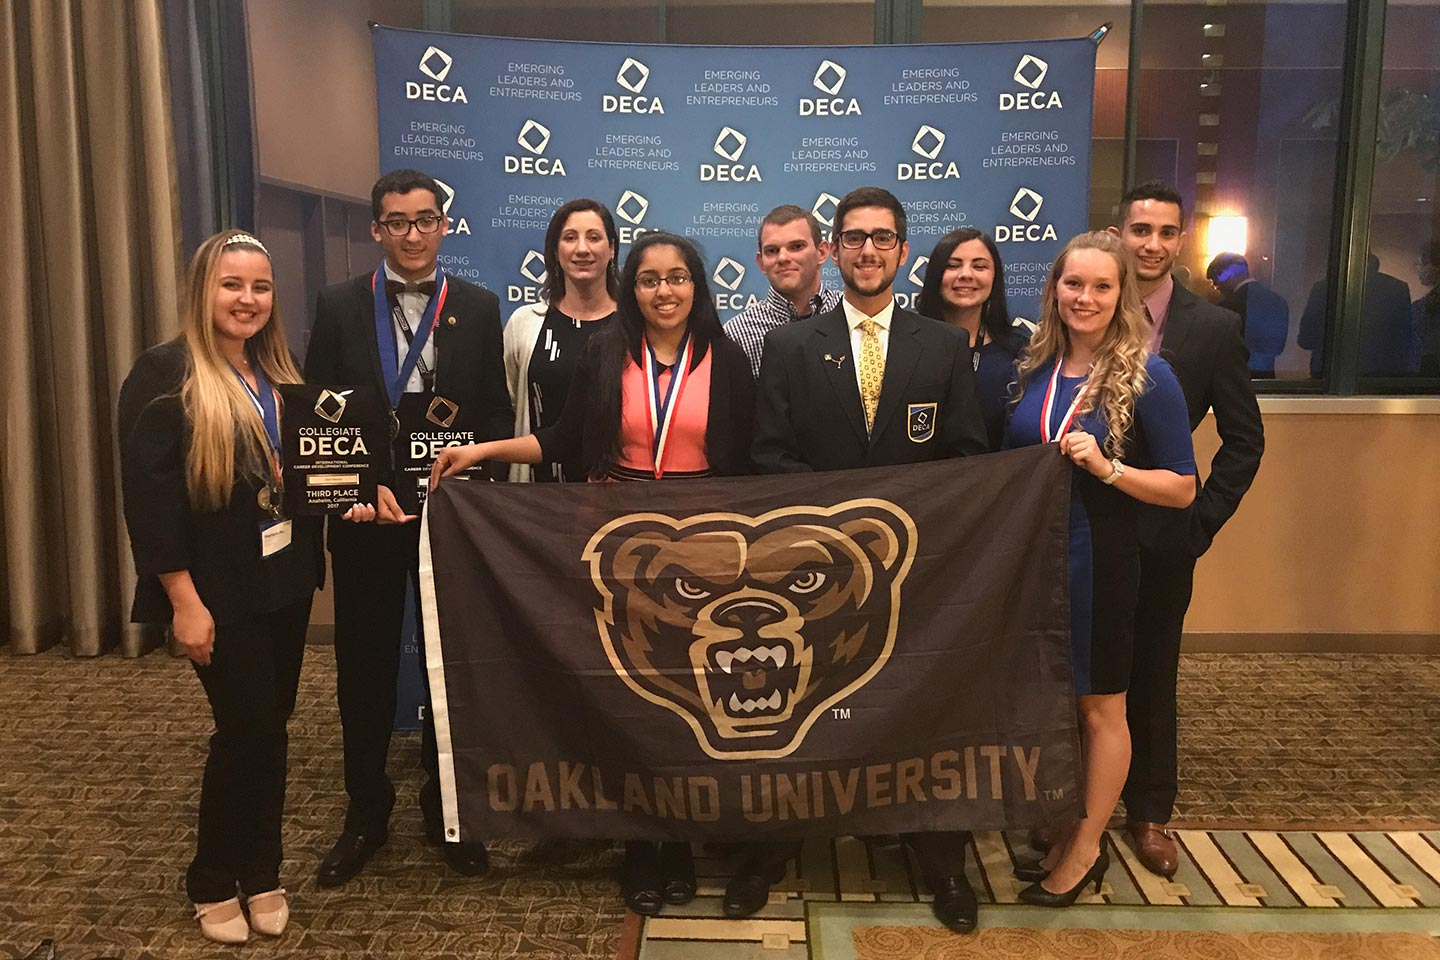 The OU DECA team holding awards and an OU Grizz flag